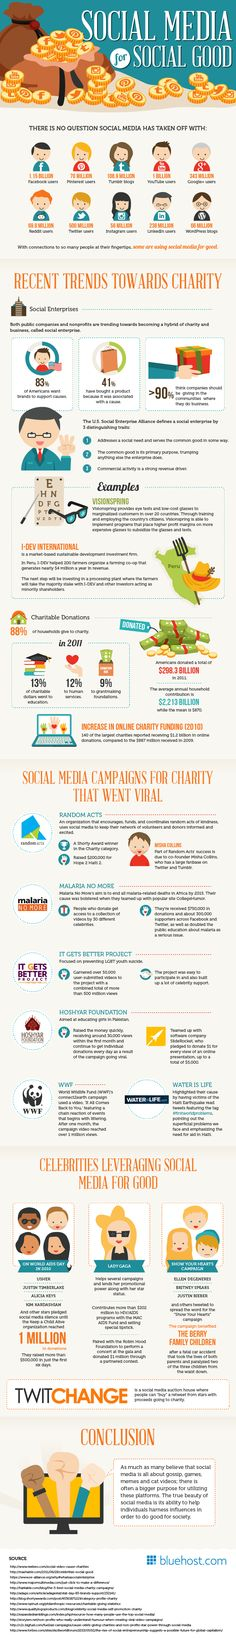 Social Media For Good (Infographic): Data re: charitable giving and linkage to social media